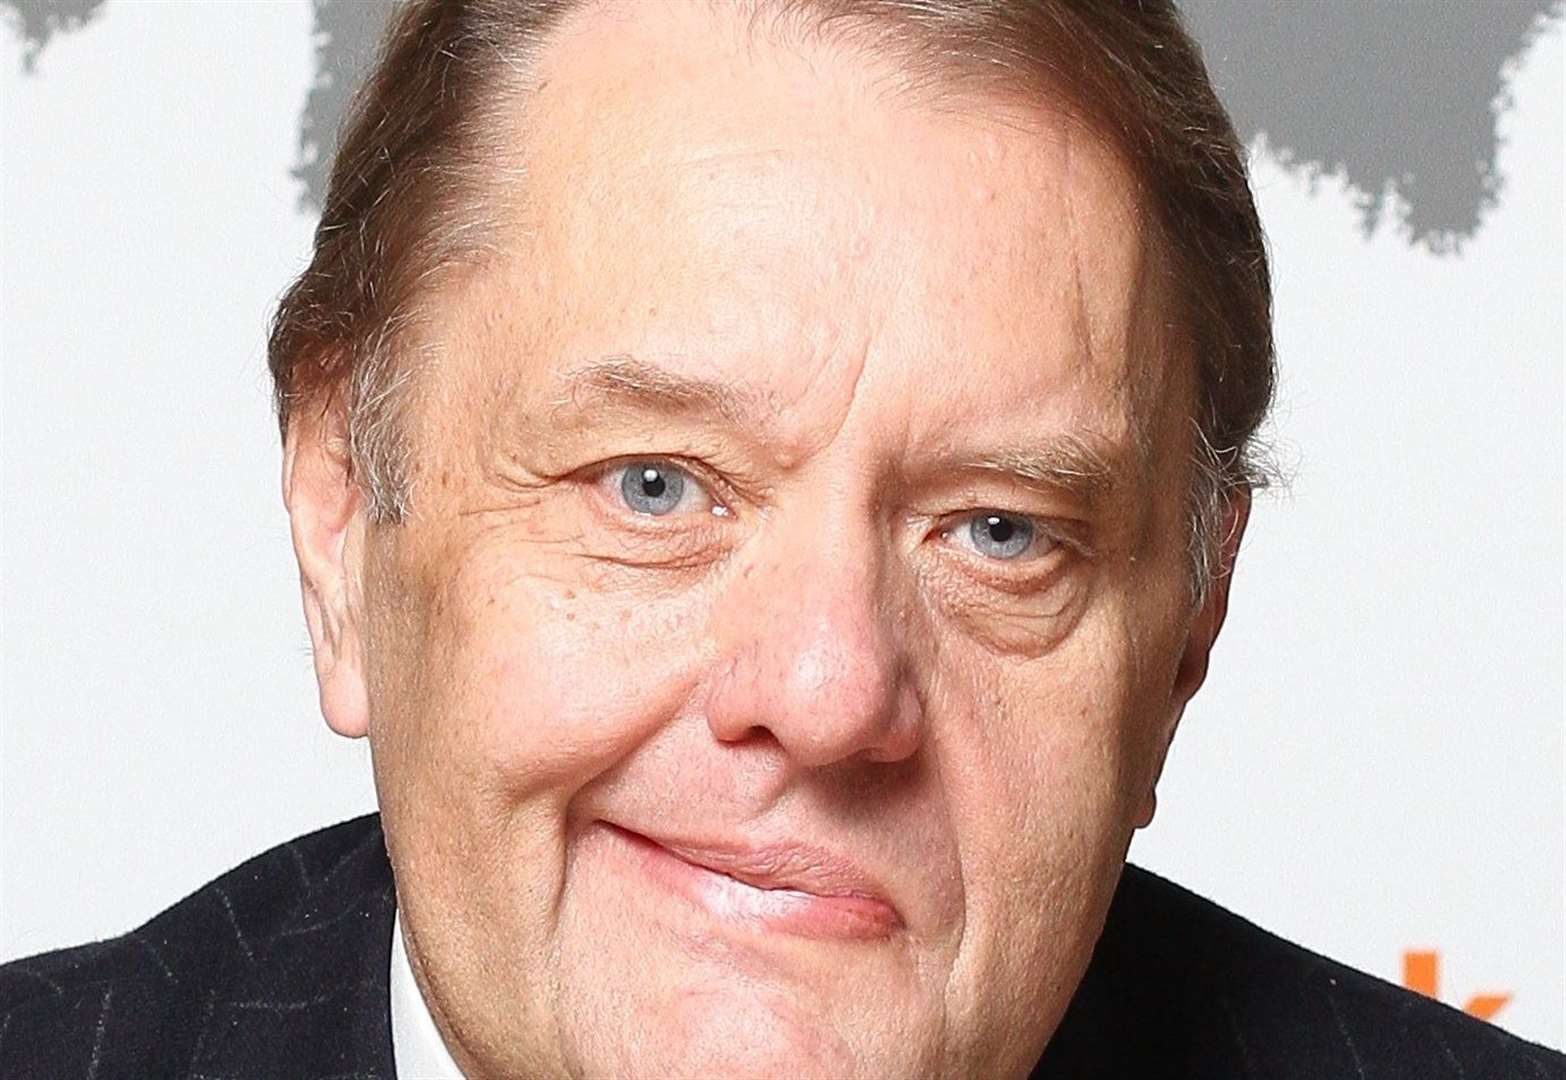 MP Sir John Hayes praised by letter writer